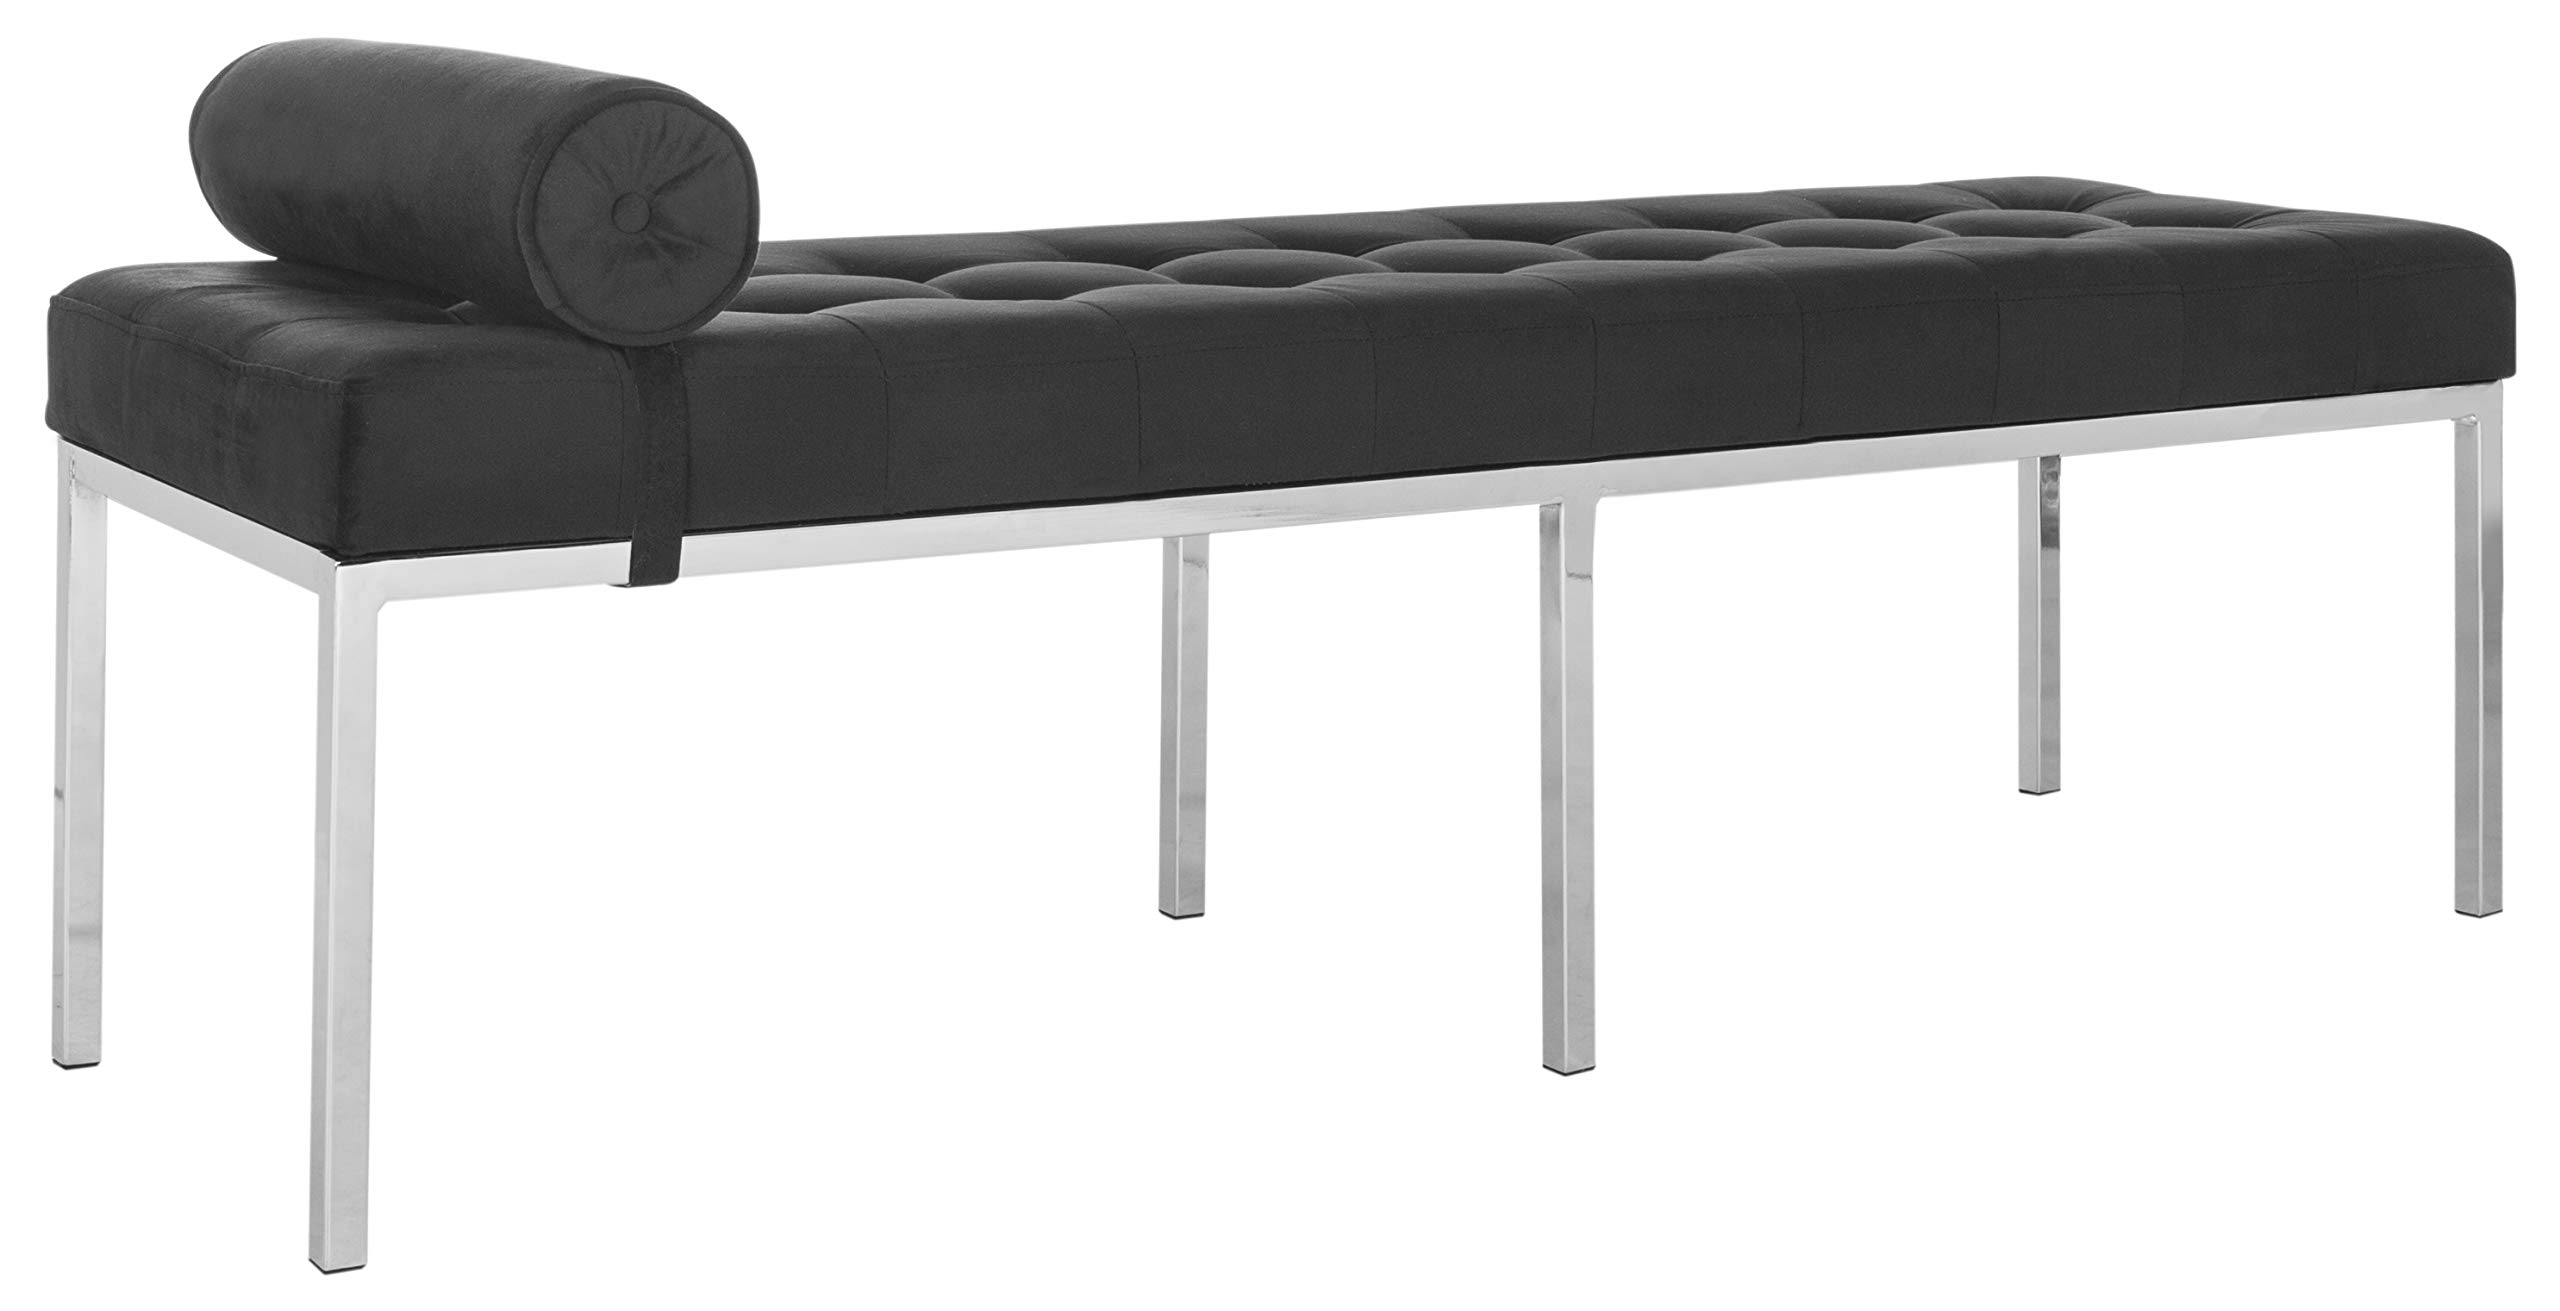 Safavieh FOX6240B Home Collection Xavier Tufted Bench, Black by Safavieh (Image #5)